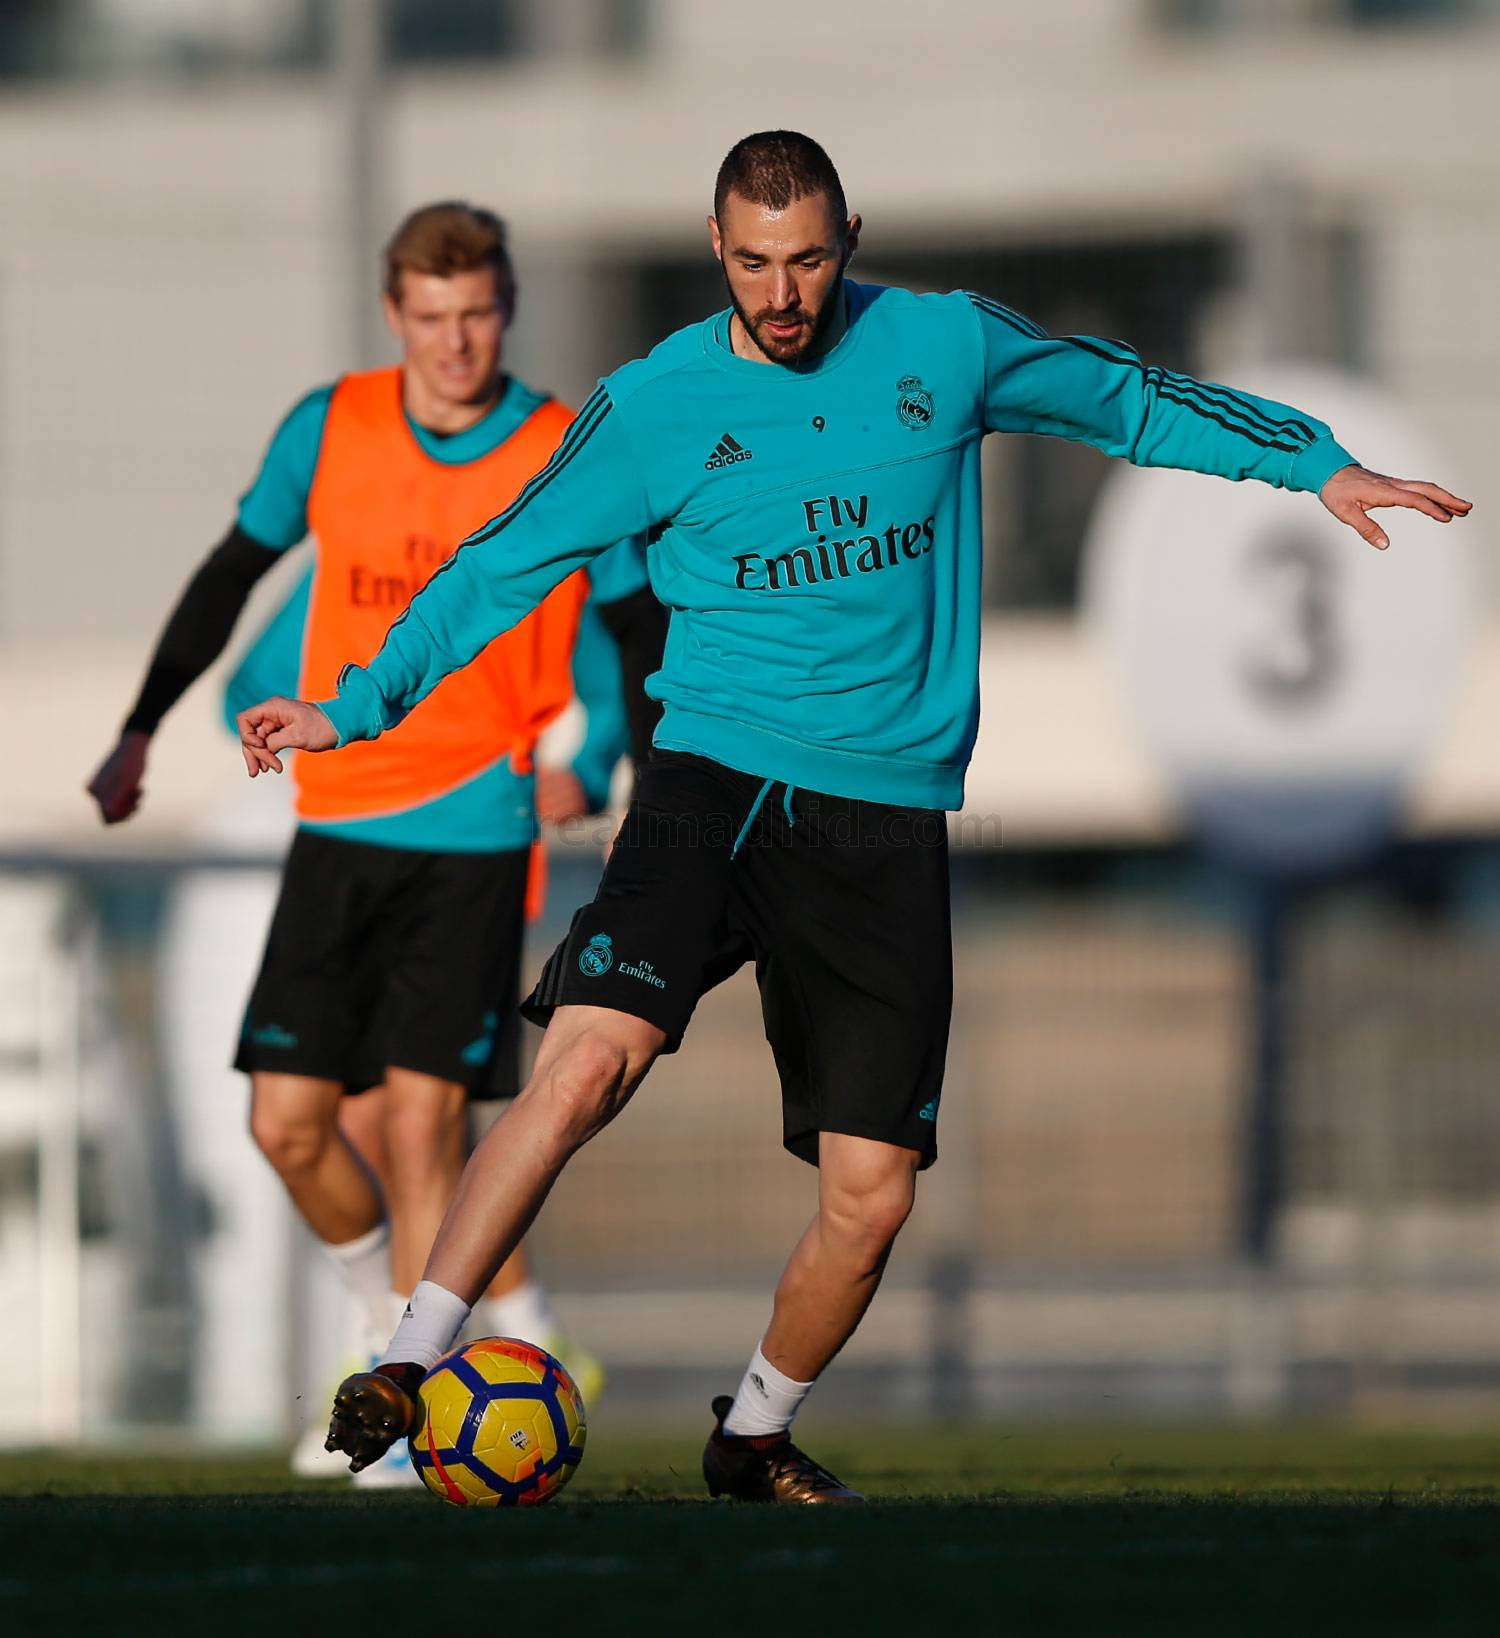 Real Madrid - Entrenamiento del Real Madrid - 29-01-2018